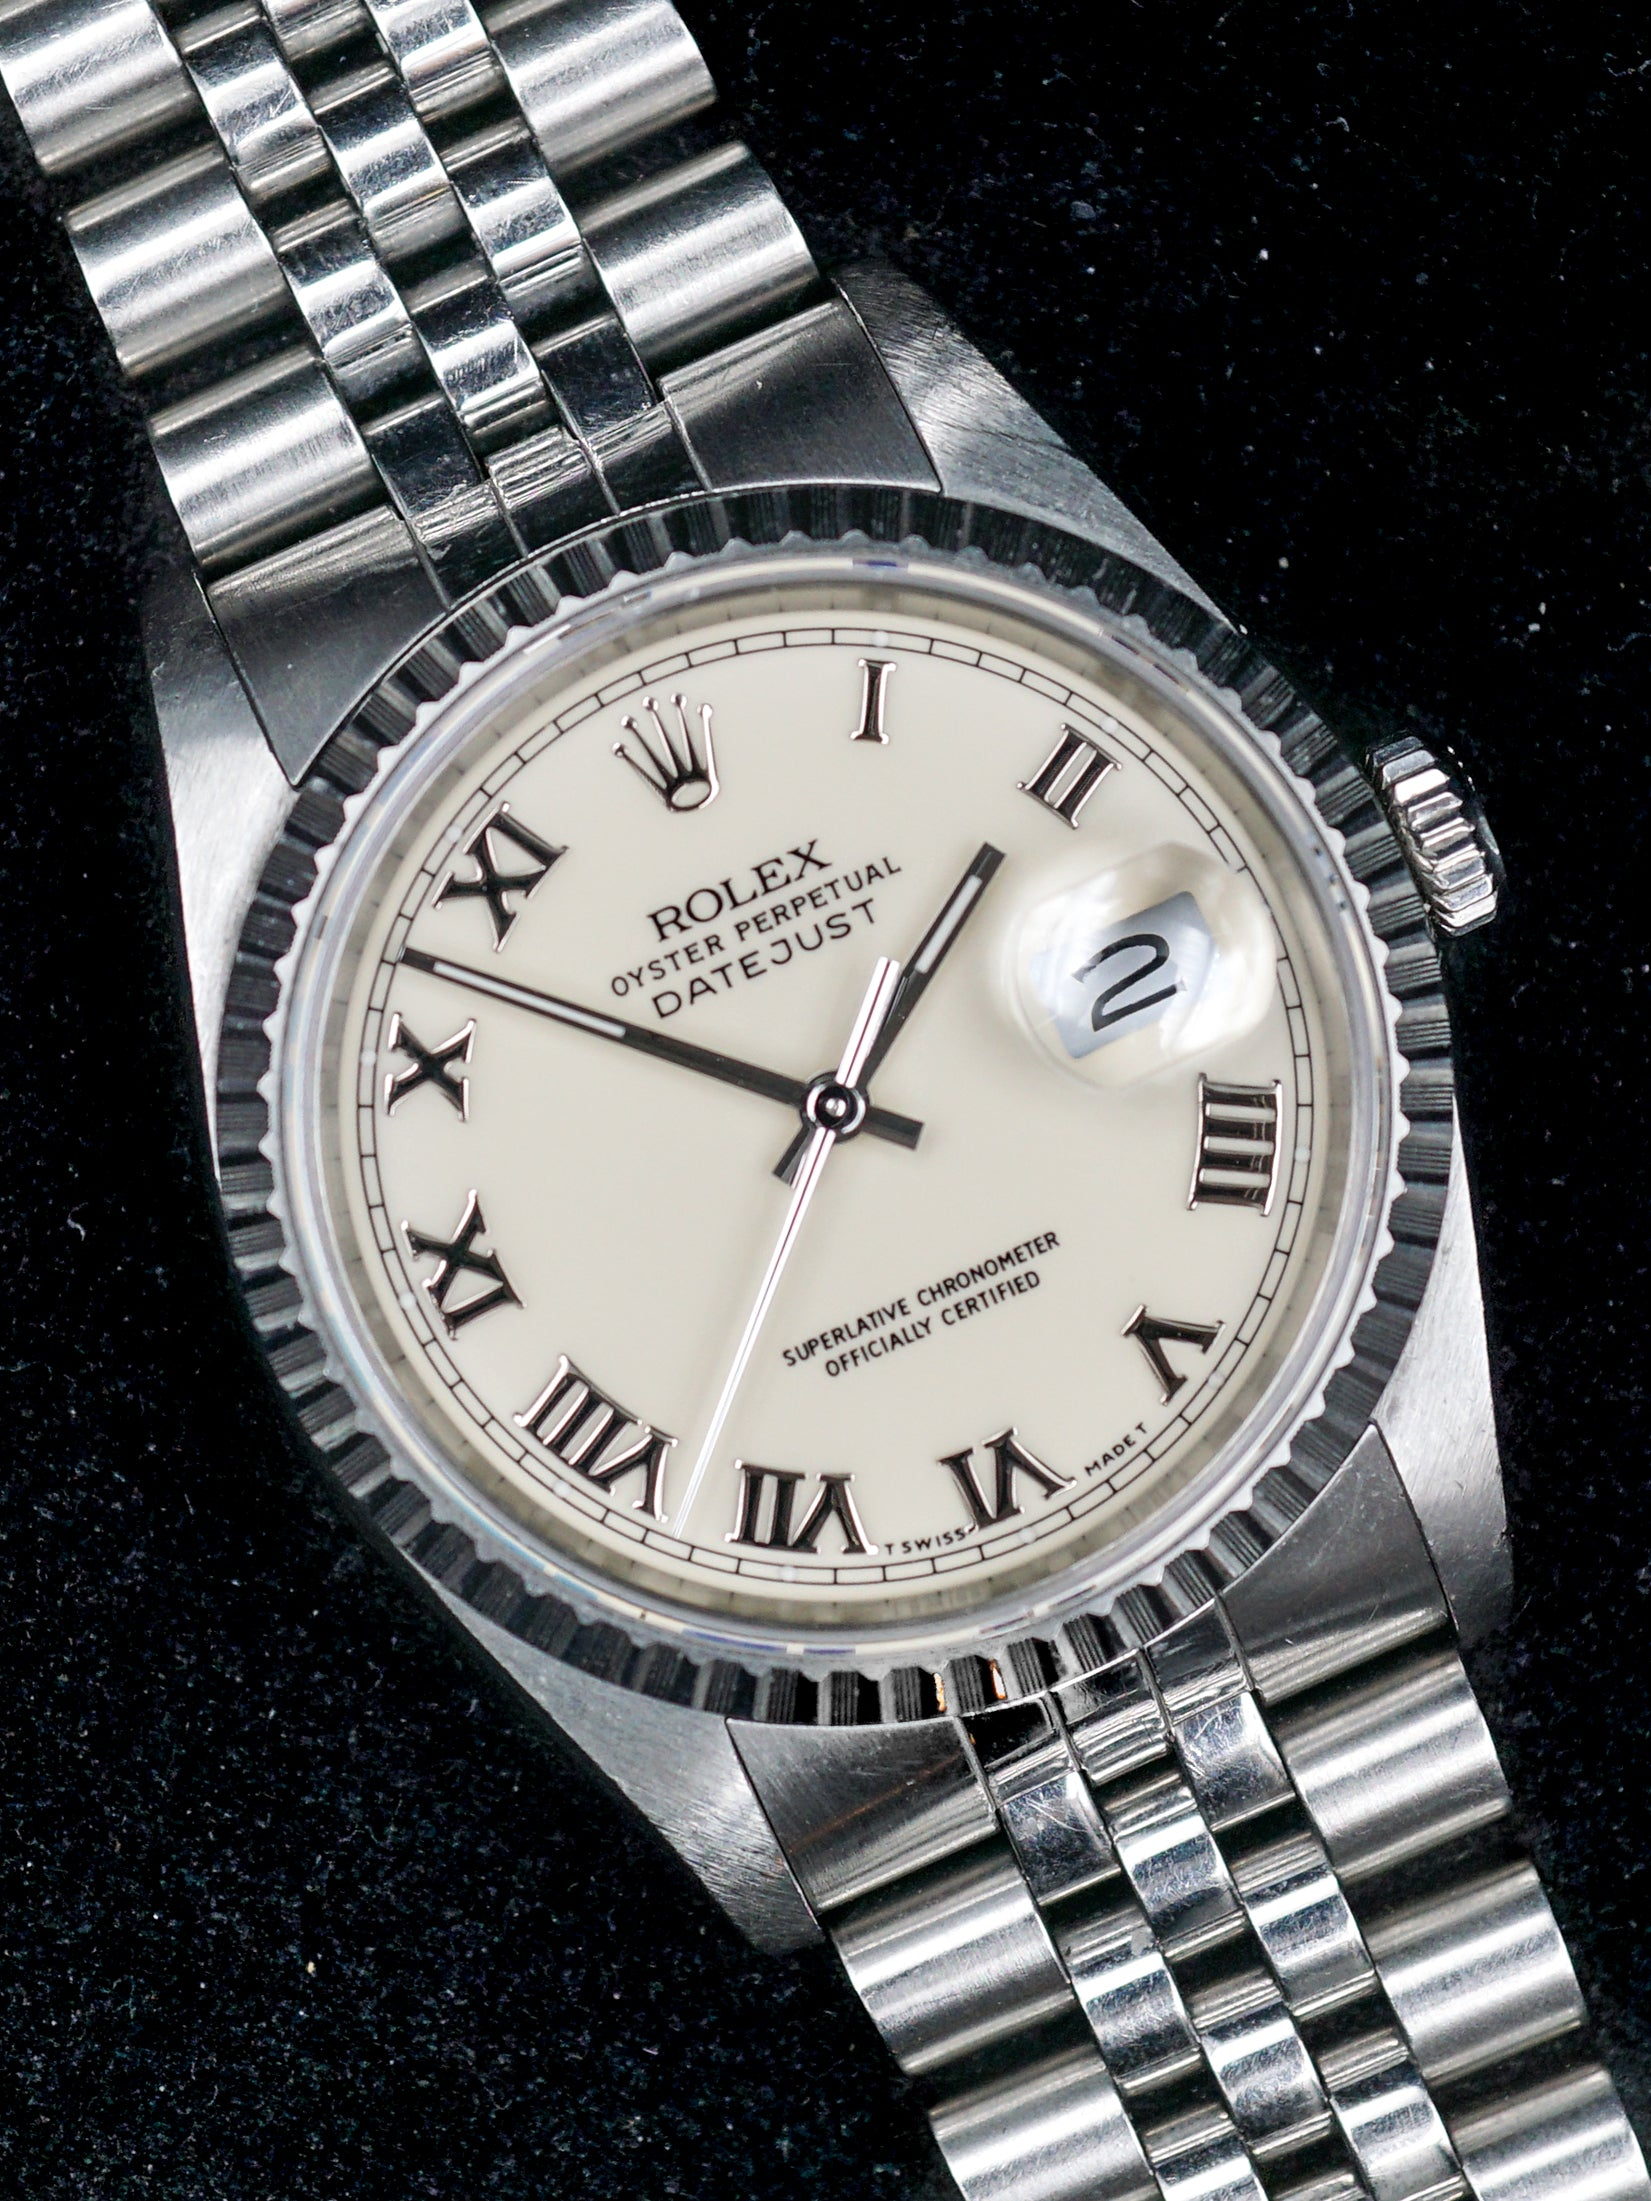 1989 Rolex Datejust (Ref. 16220) With Papers